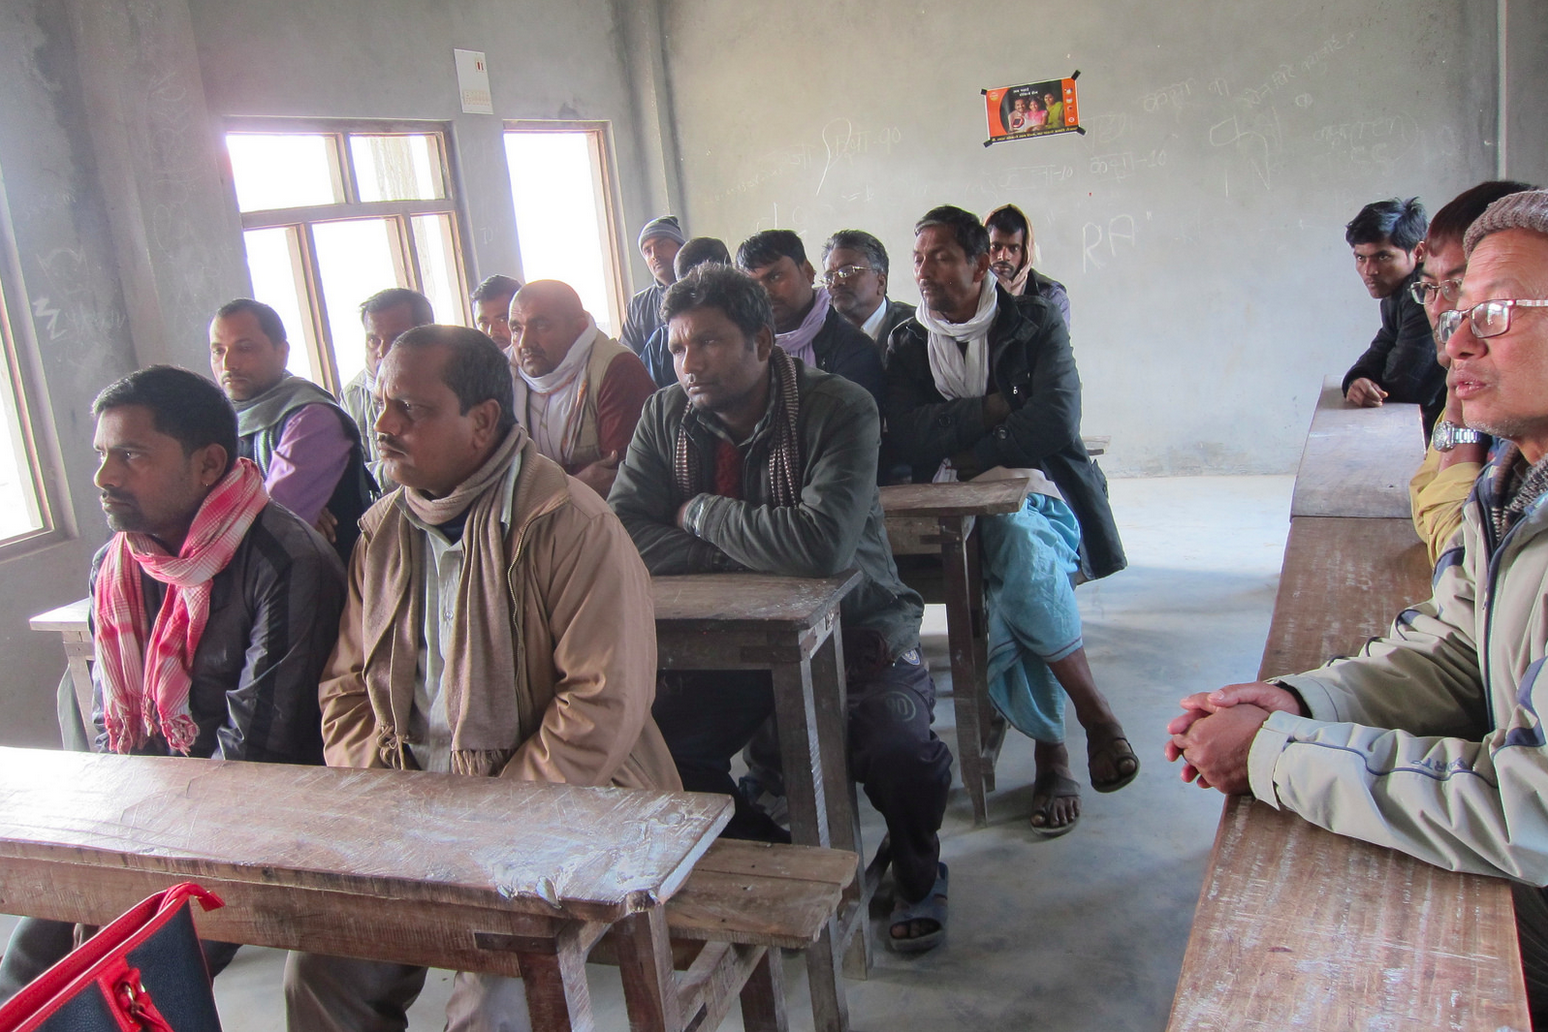 Many programs in the Nepal rural community highlight the lack of women's empowerment and opportunity - this session hosted by Empower Generation staff was only attended by male members of the community.